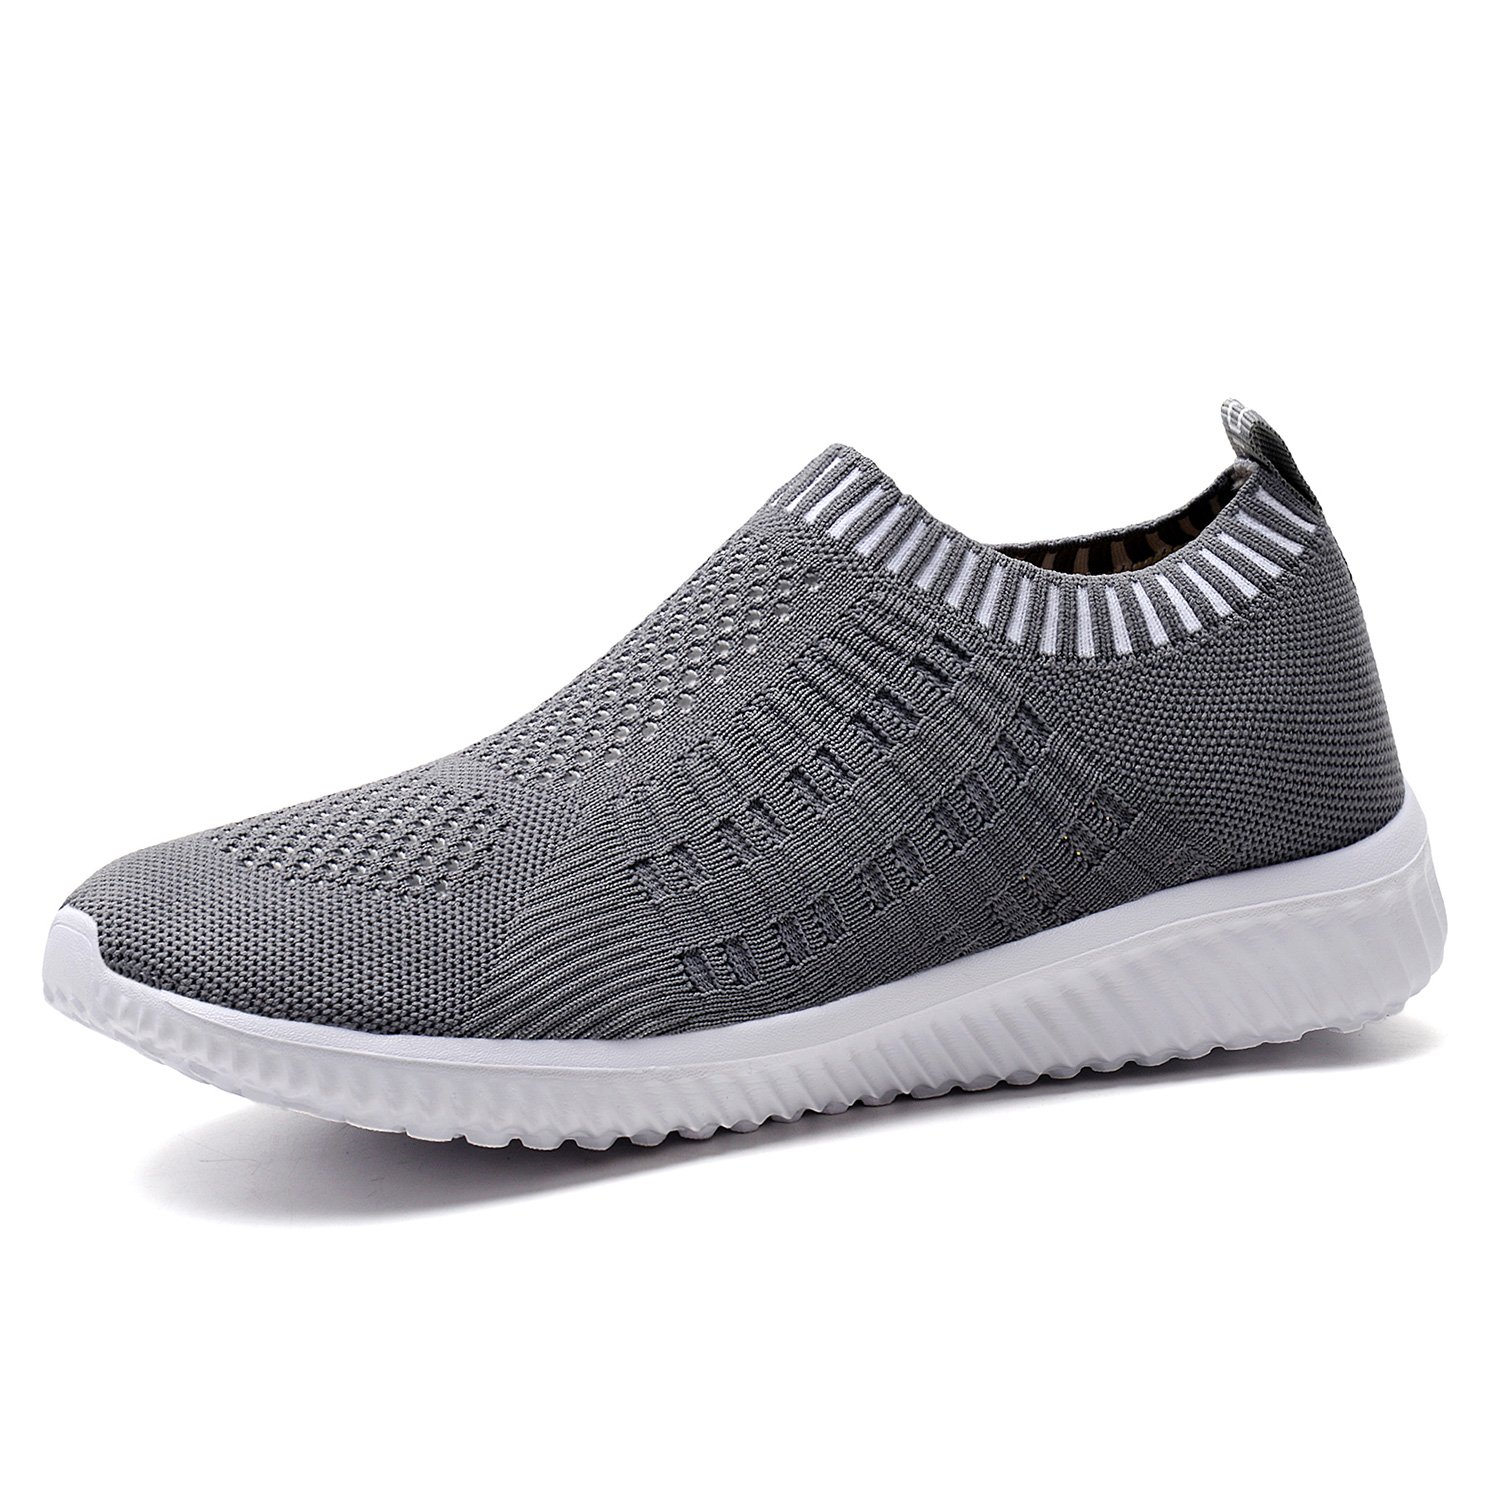 TIOSEBON Women's Athletic Shoes Casual Mesh Walking Sneakers B076P2P3GX - Breathable Running Shoes B076P2P3GX Sneakers 6.5 M US|6701 Deep Gray 9b4fa3